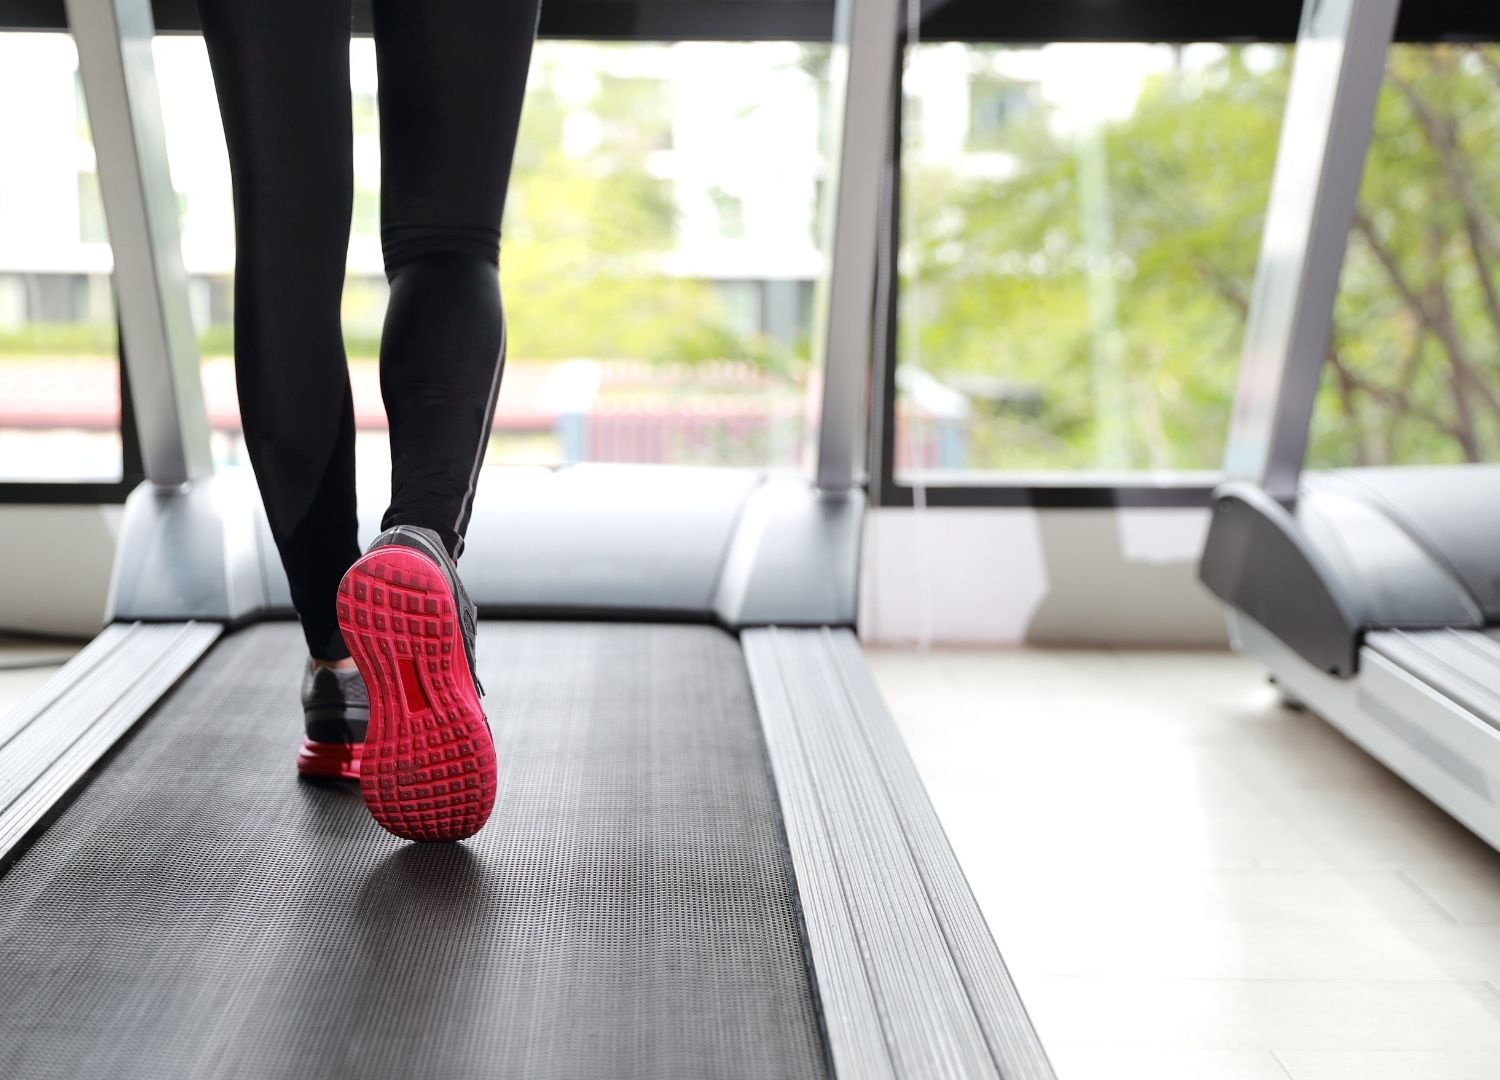 A person walking on a treadmill